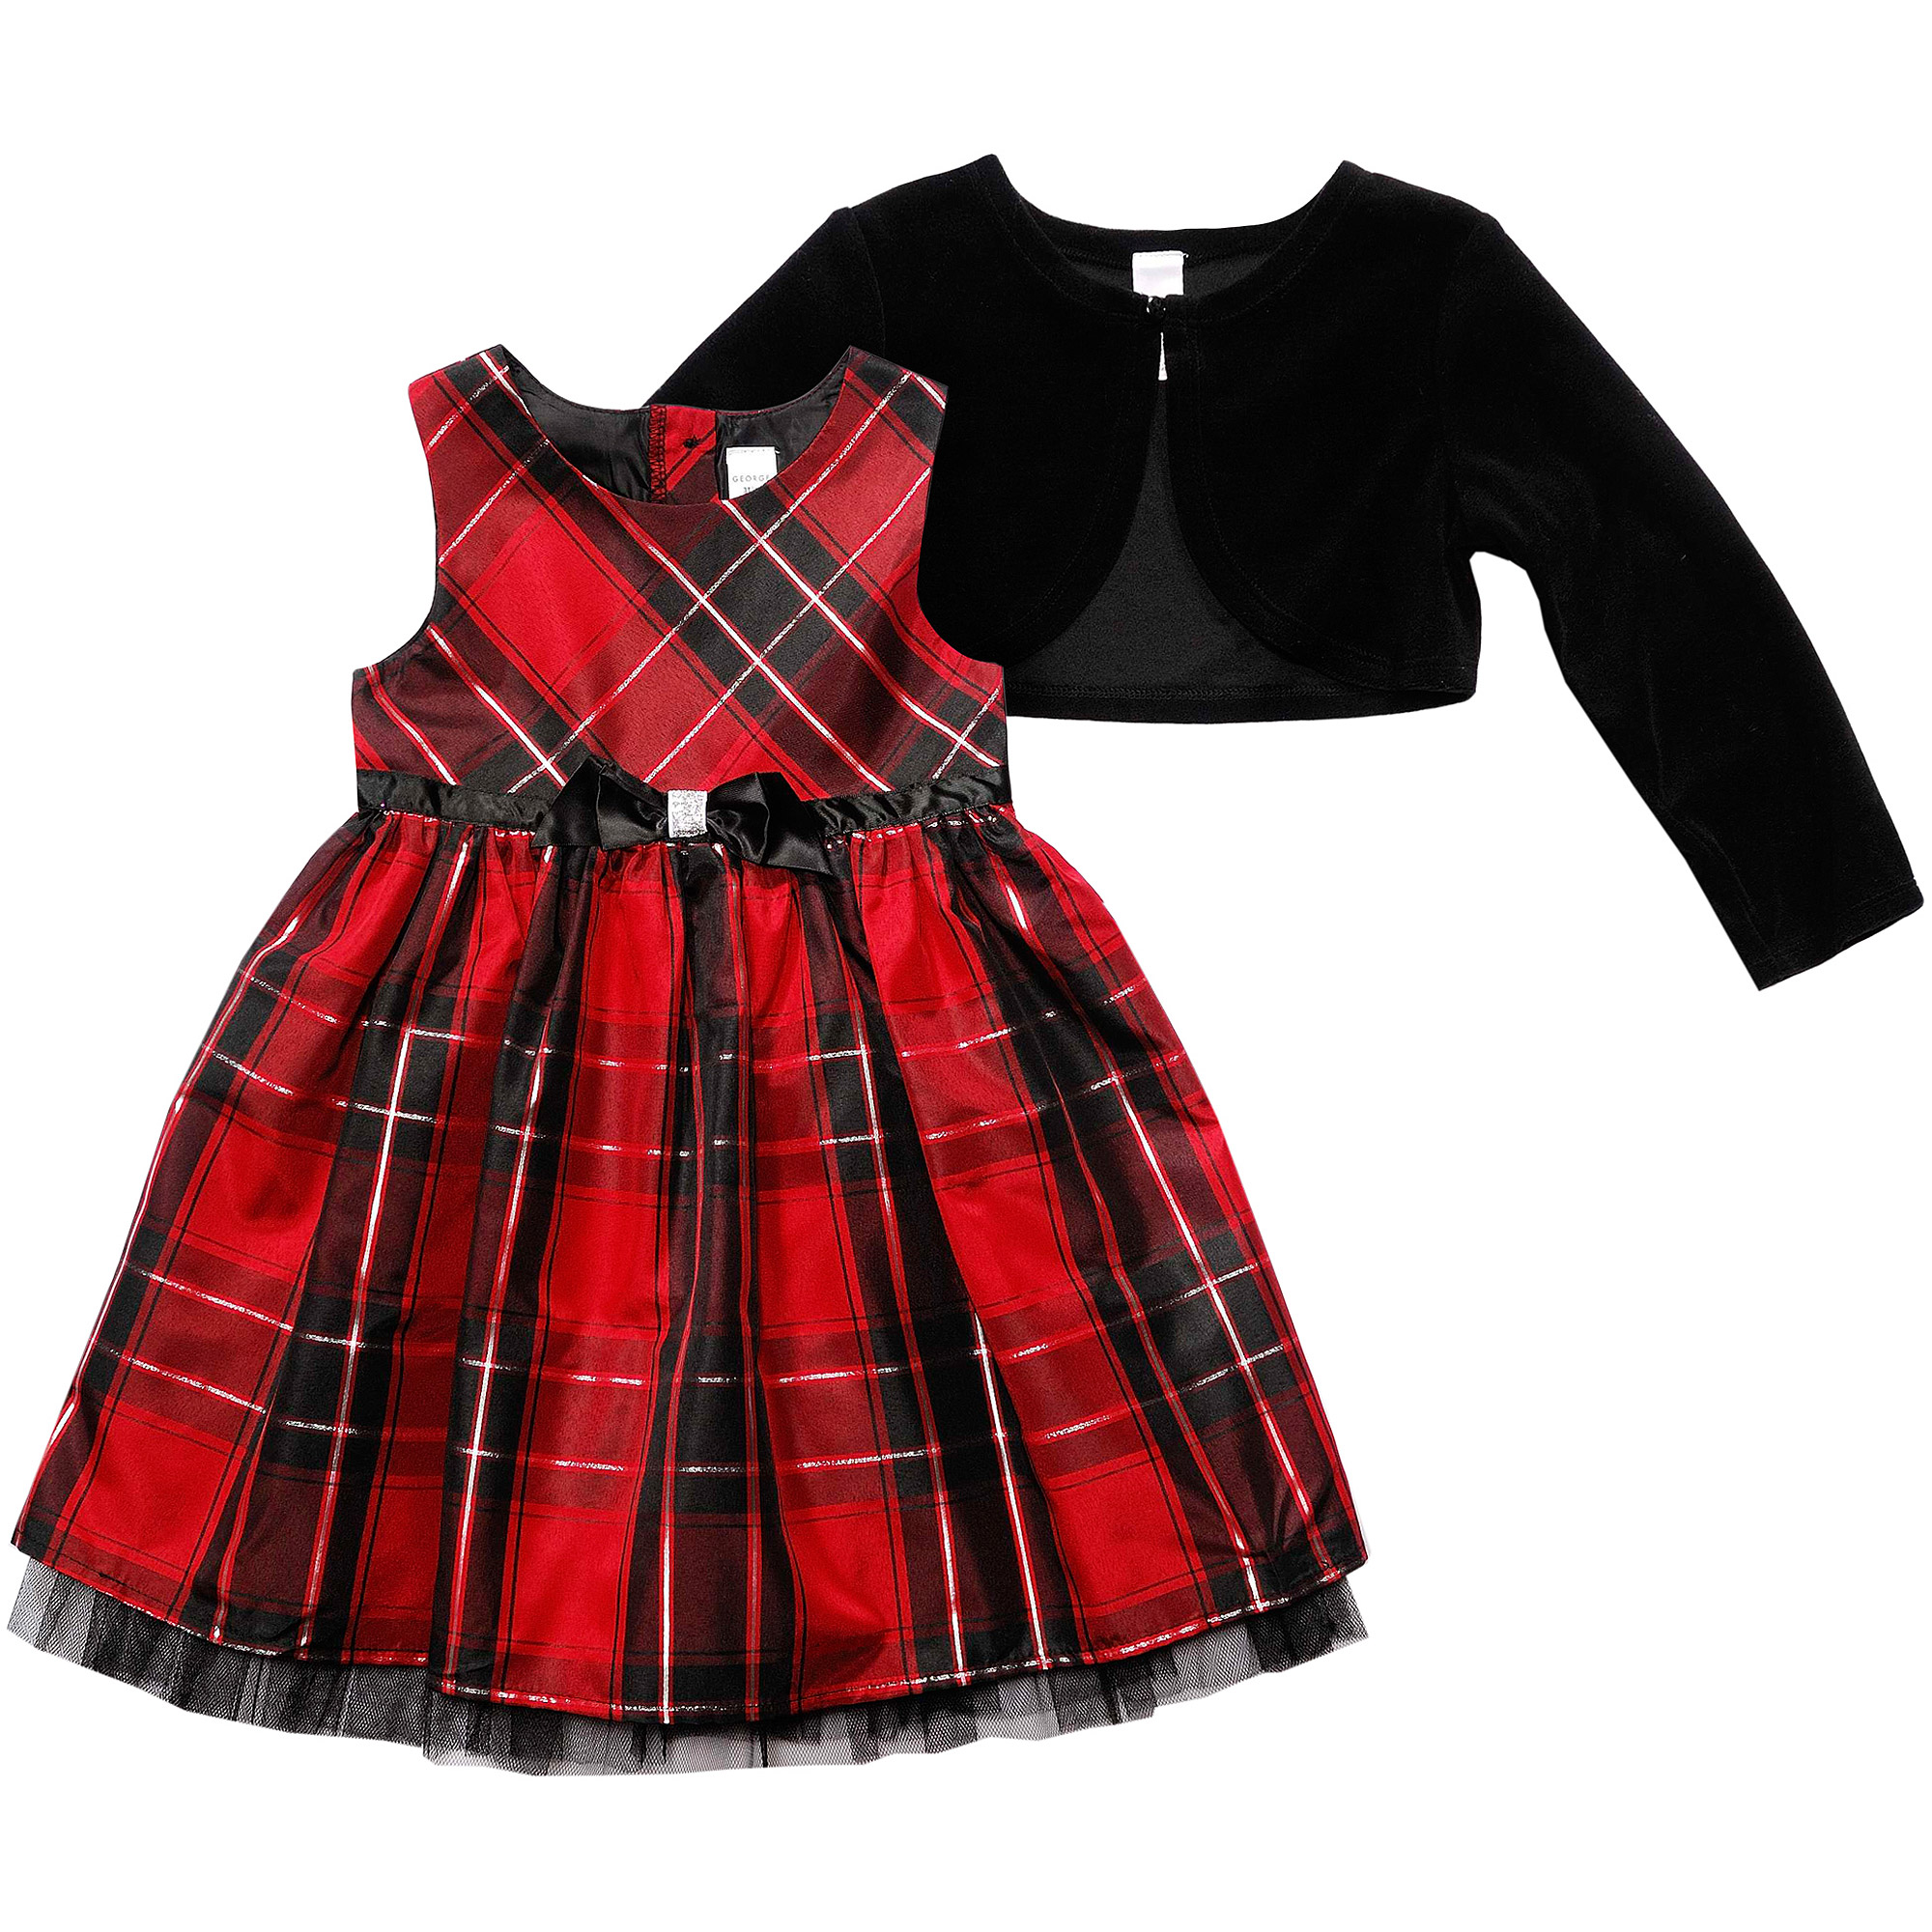 Charming Christmas Dresses For Toddlers #1: 87bec9d6-59e5-400c-a677-b28f69830293_1.b883bbbca211fc17c7da0aa9dbe00f14.jpeg?odnHeight=450